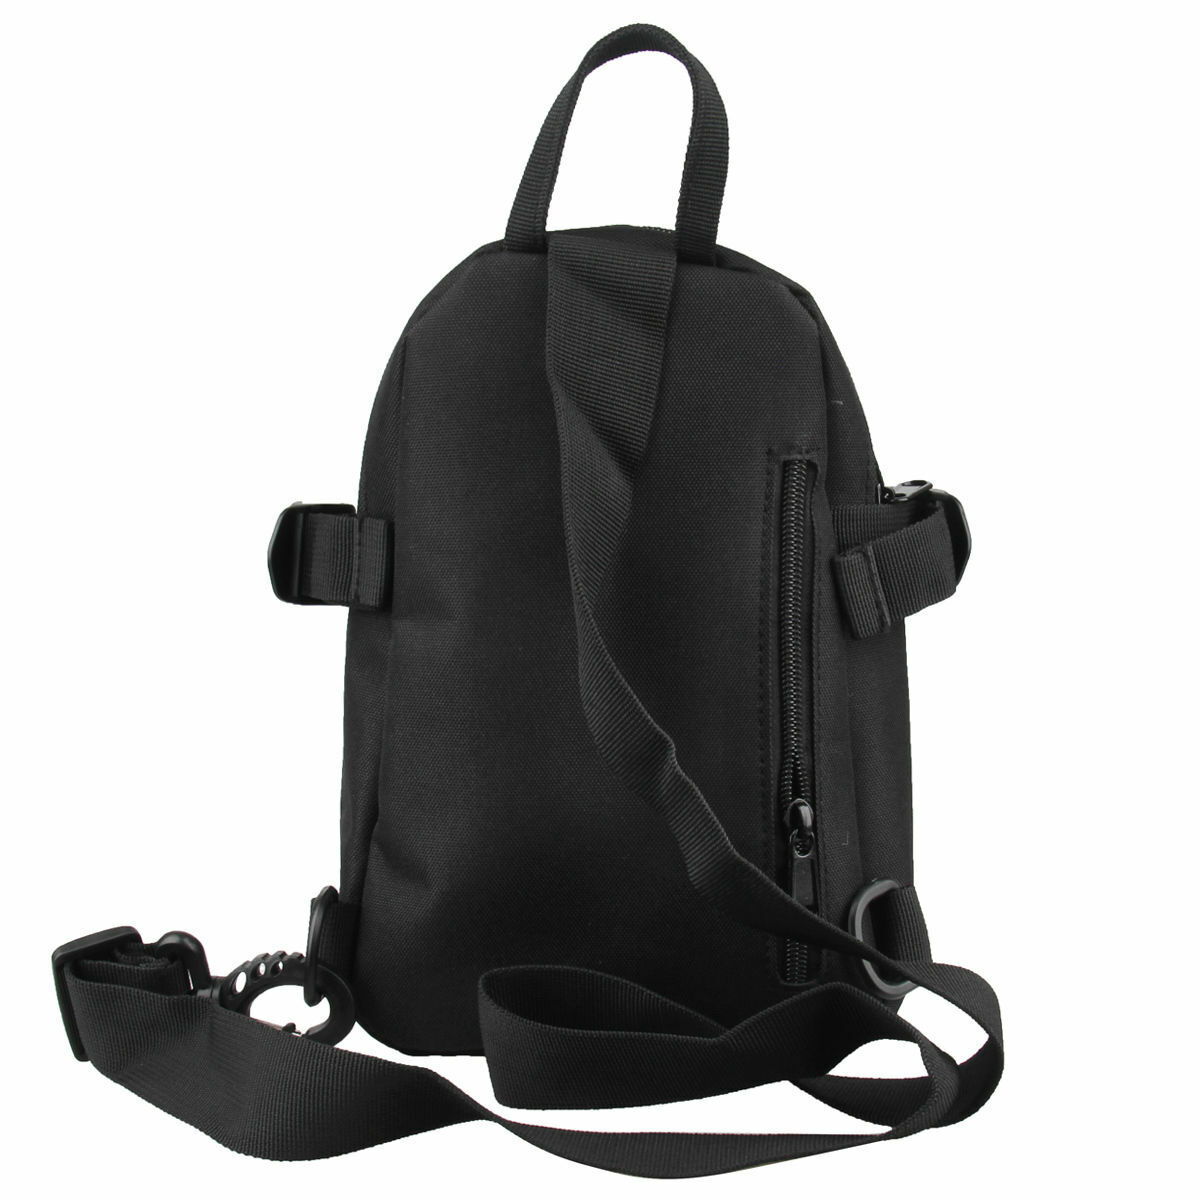 Tactical Compact EDC Sling Bag Shoulder Bag for Travel Hiking Outdoor Sports US Bags